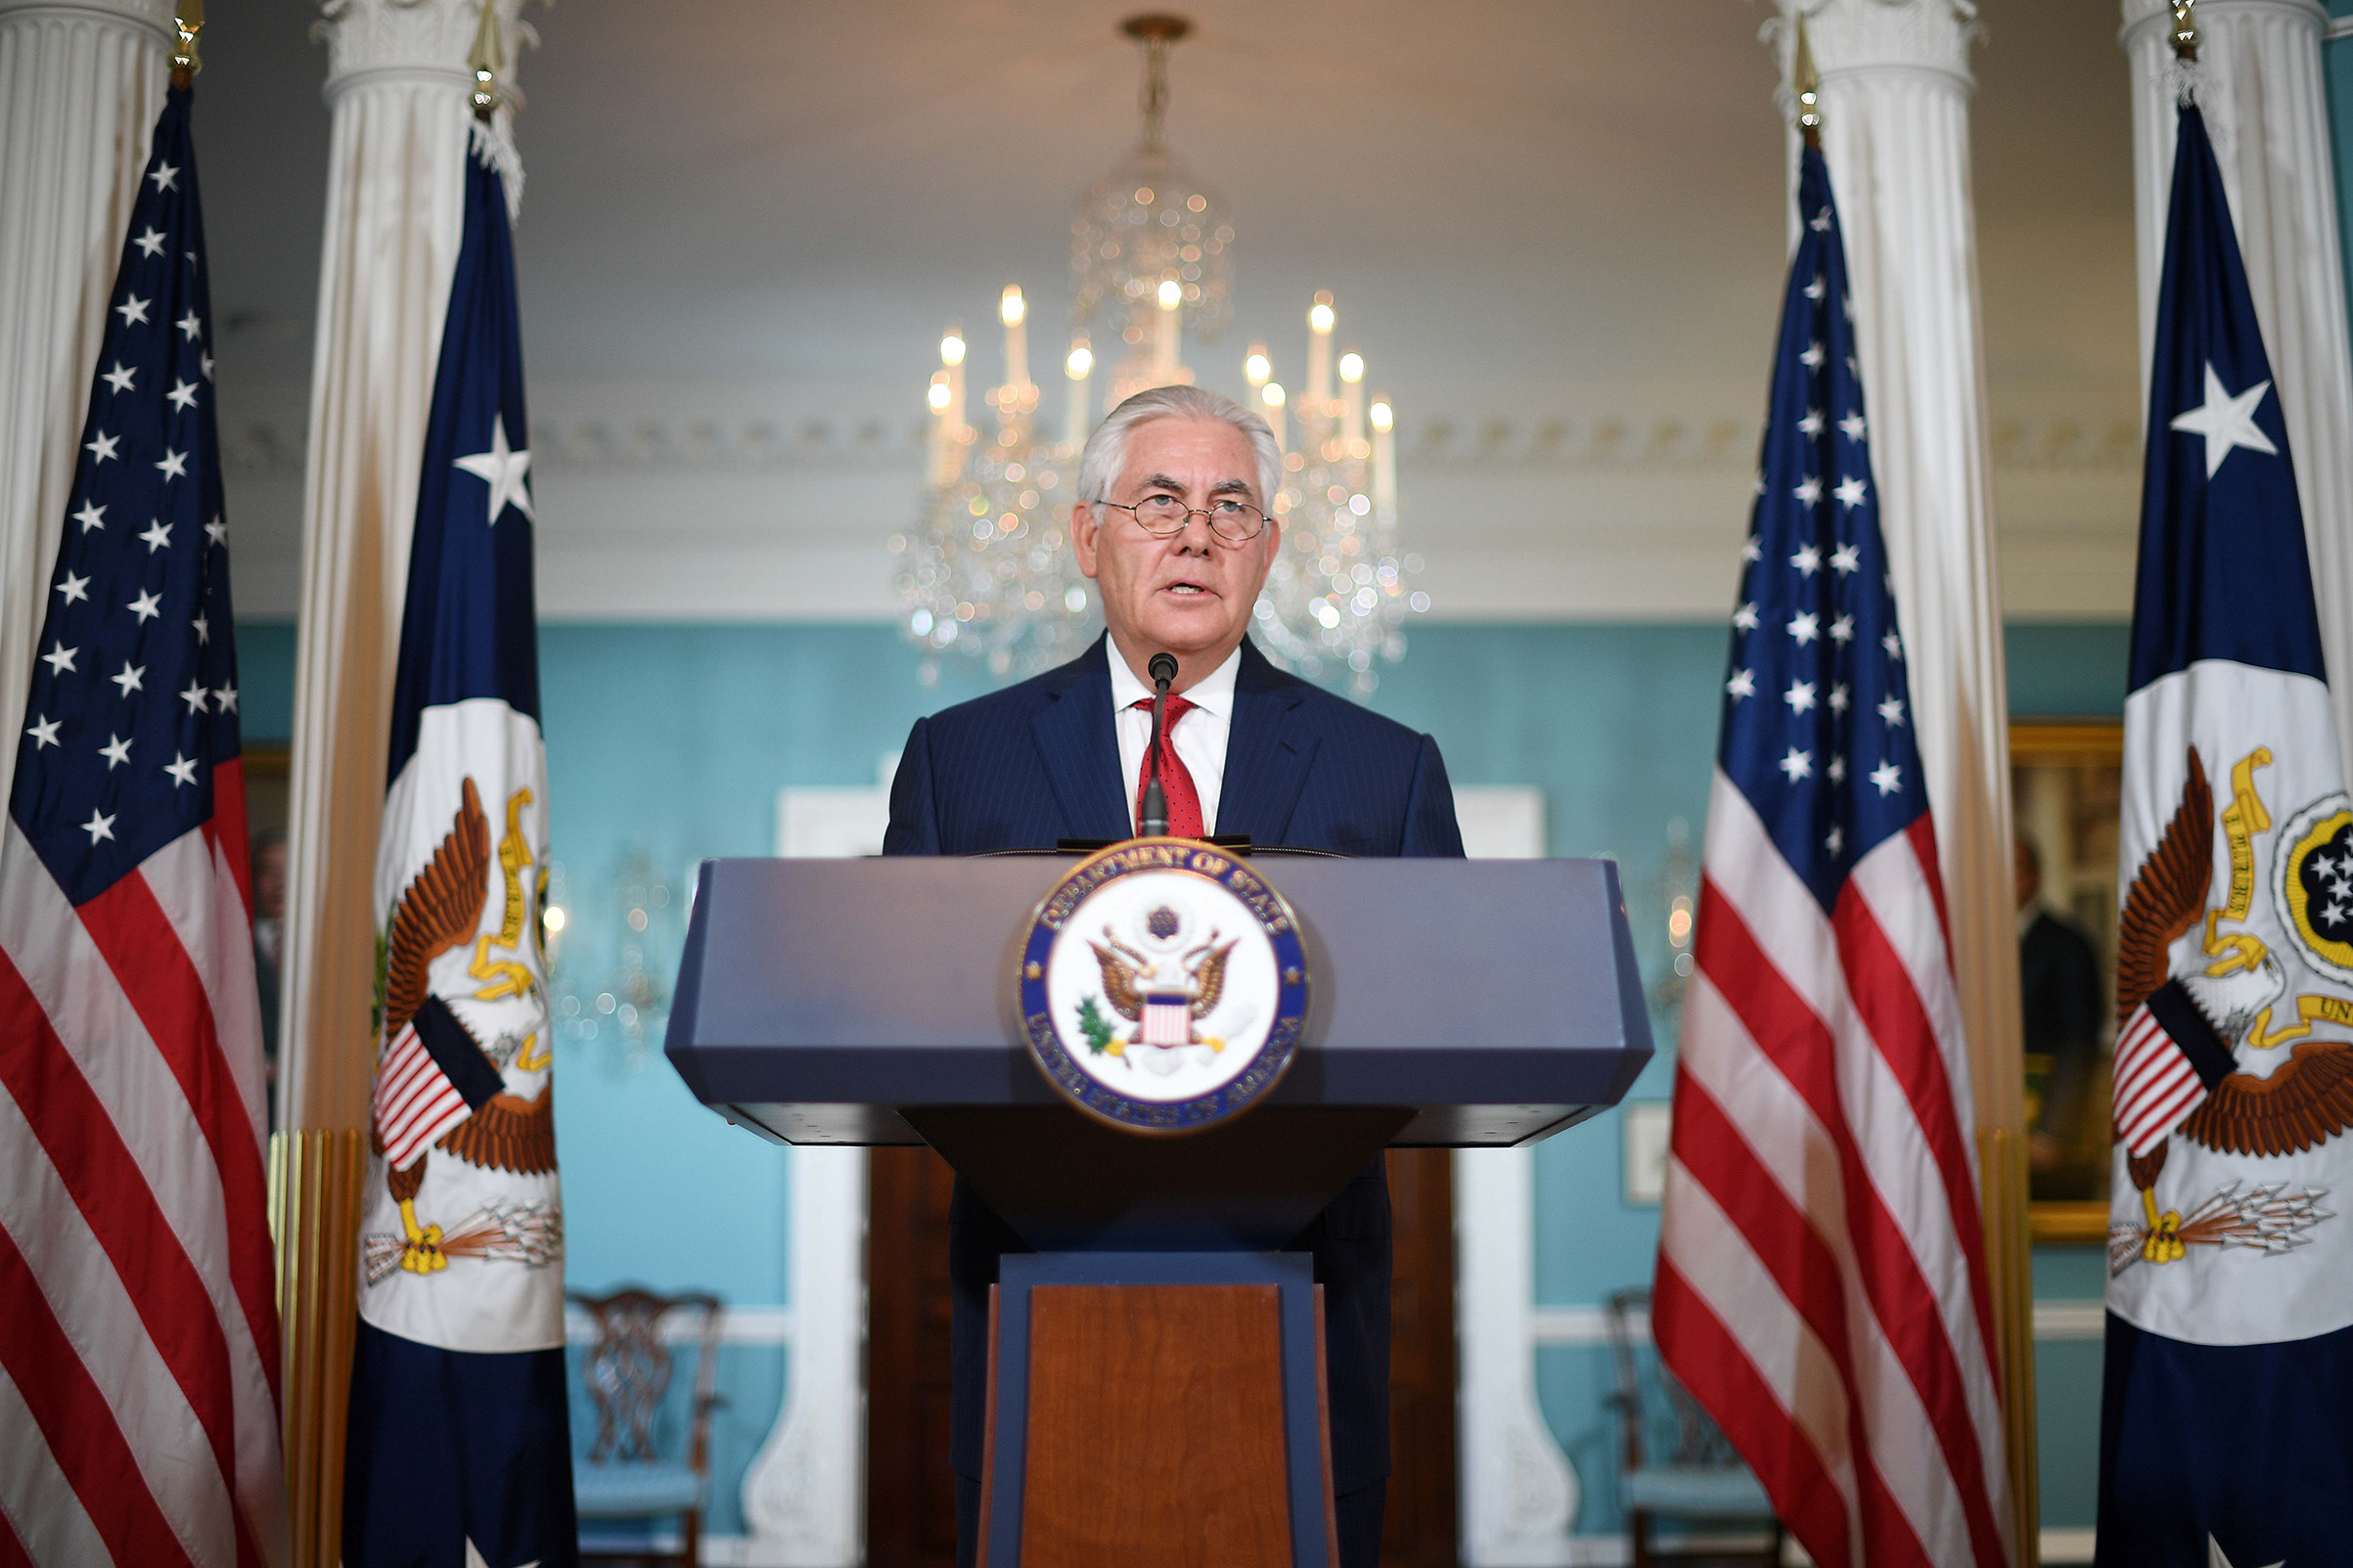 US Secretary of State Rex Tillerson makes a statement to the press on Oct. 4, 2017.